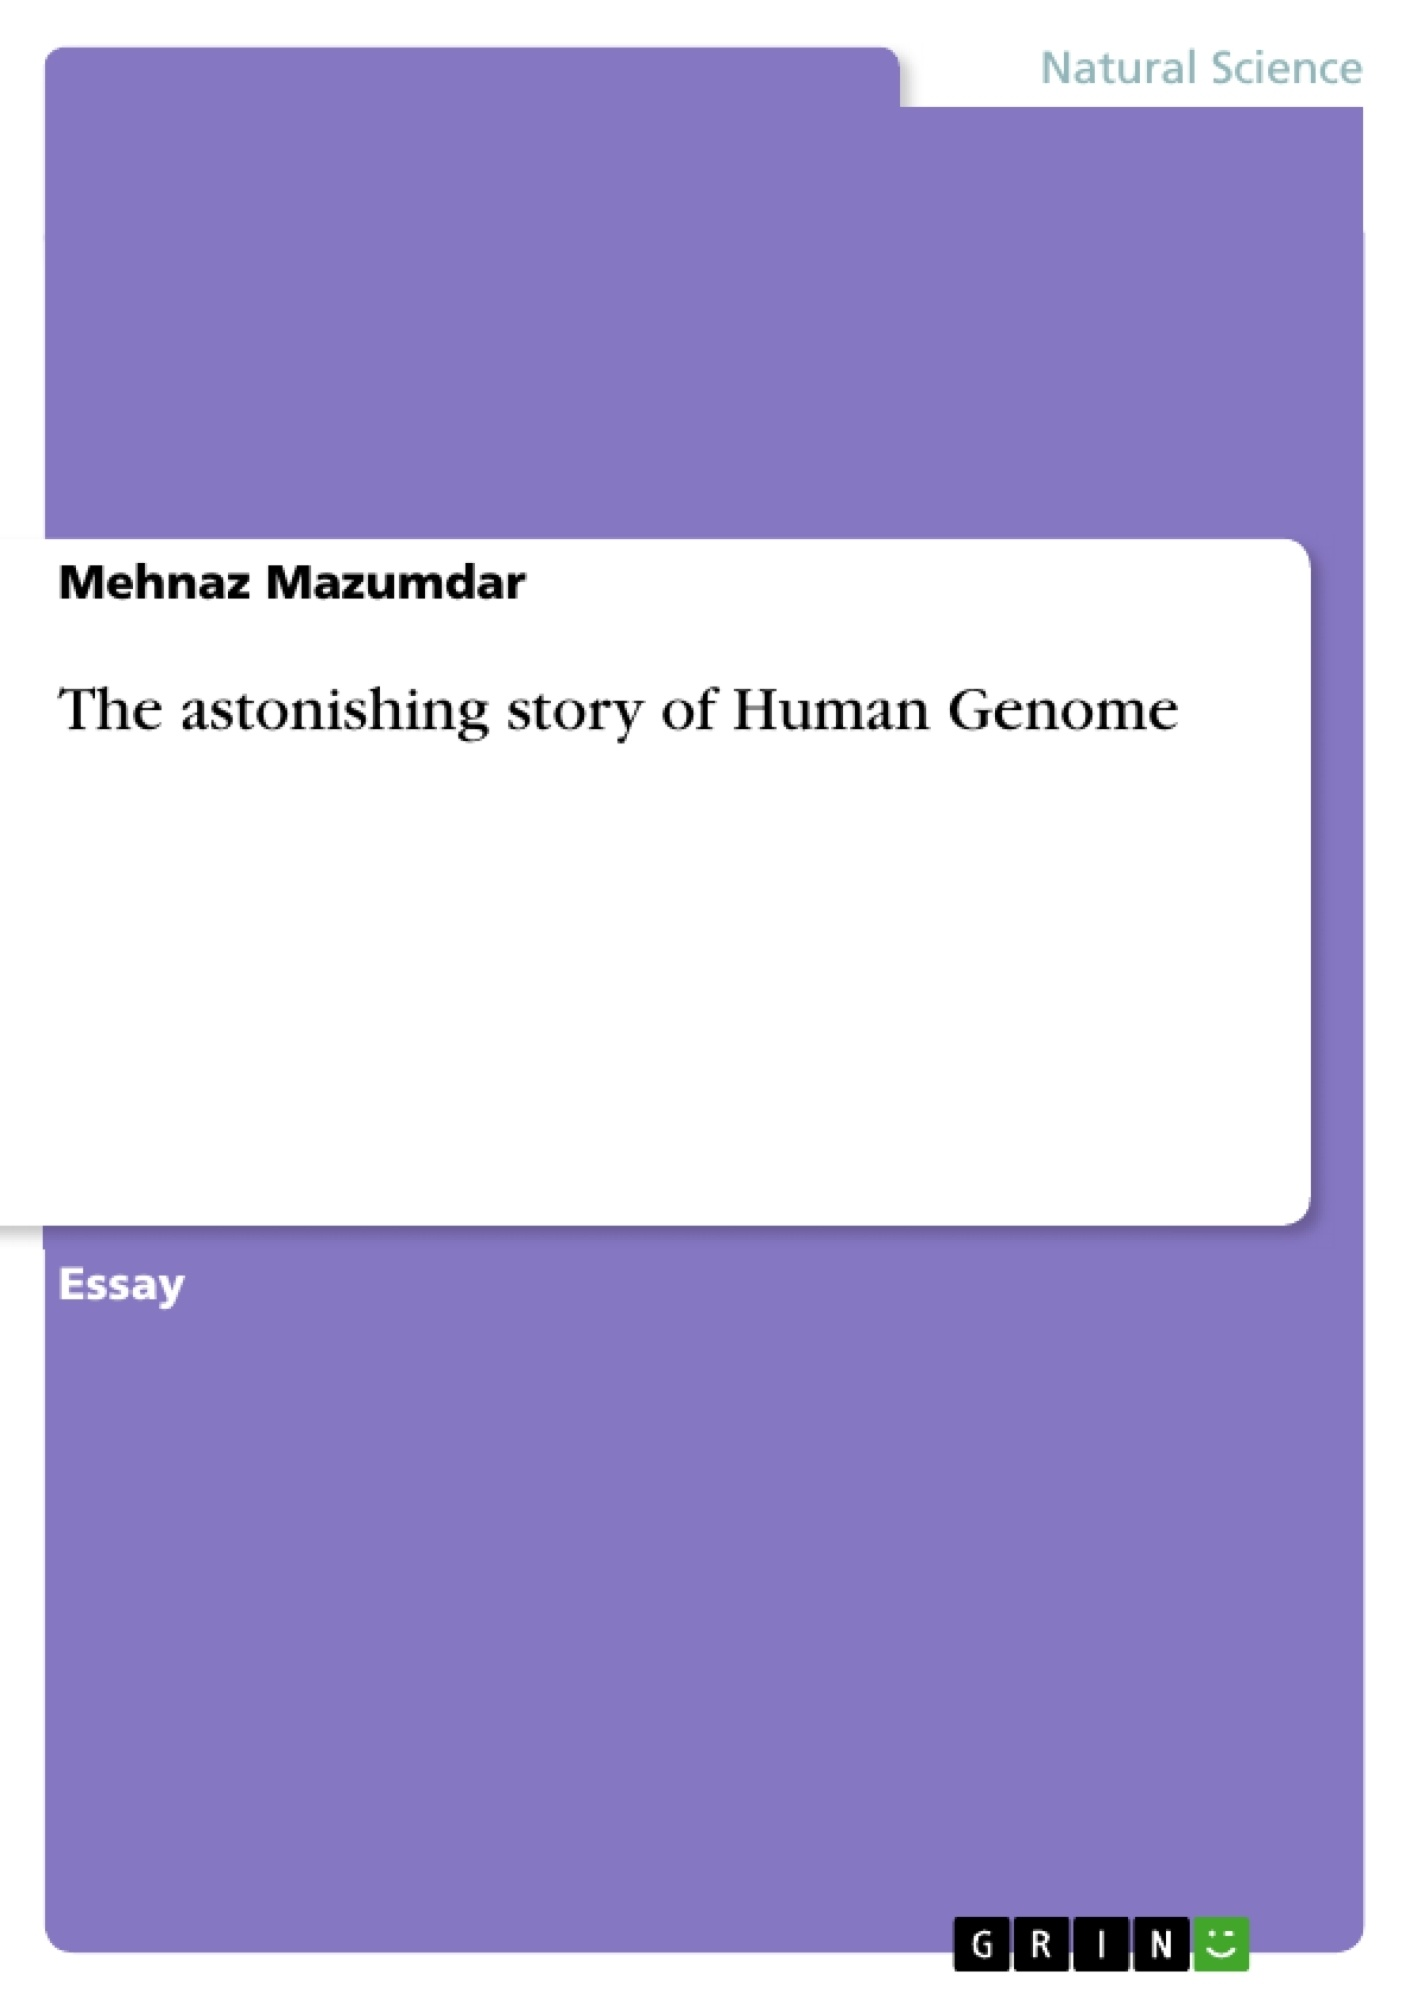 Title: The astonishing story of Human Genome